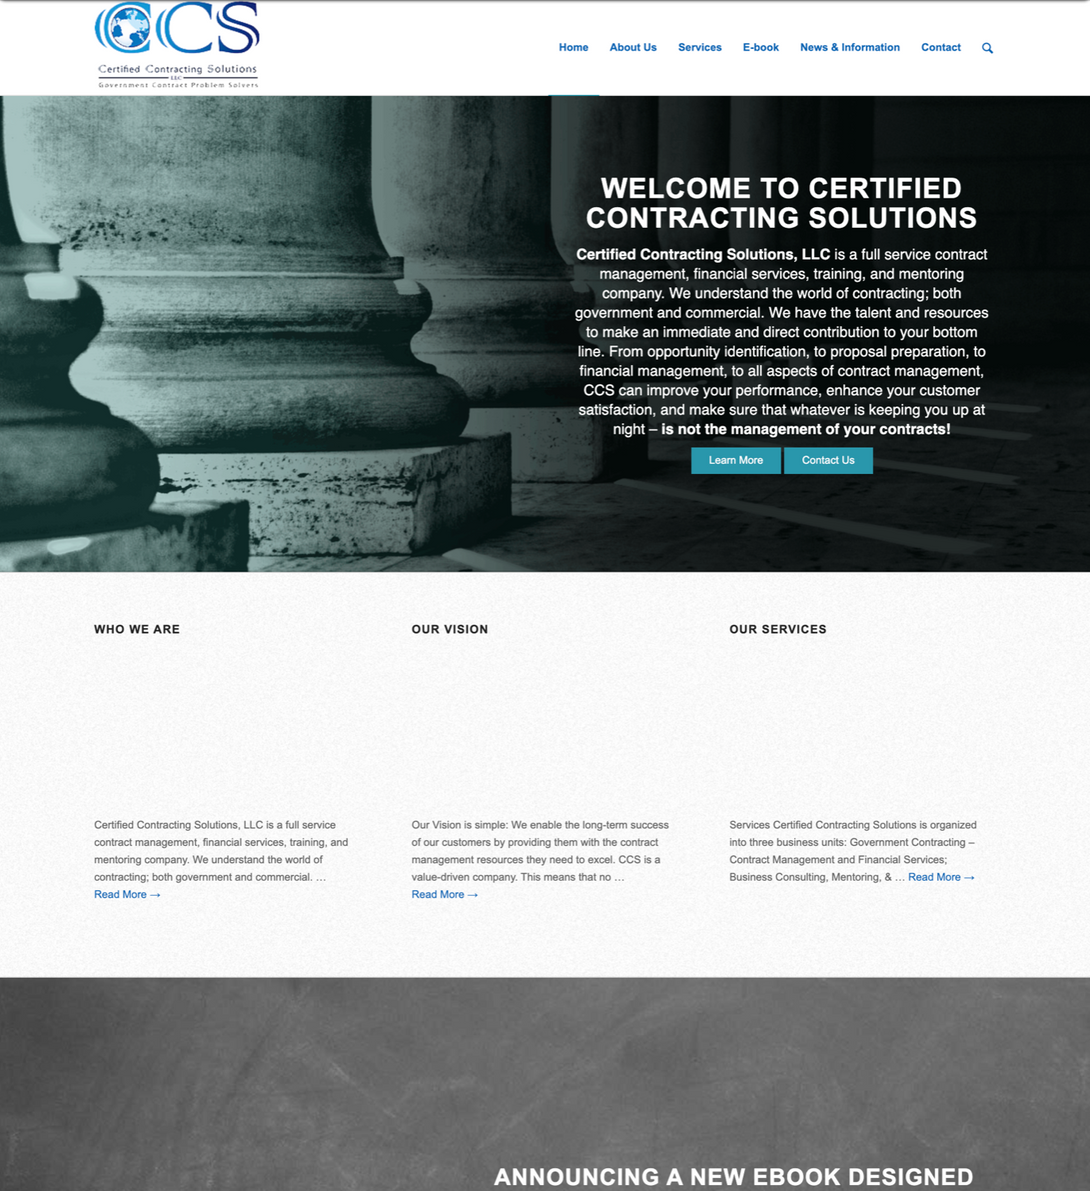 CCS Website Before-Web Design and Development by Splurge Media